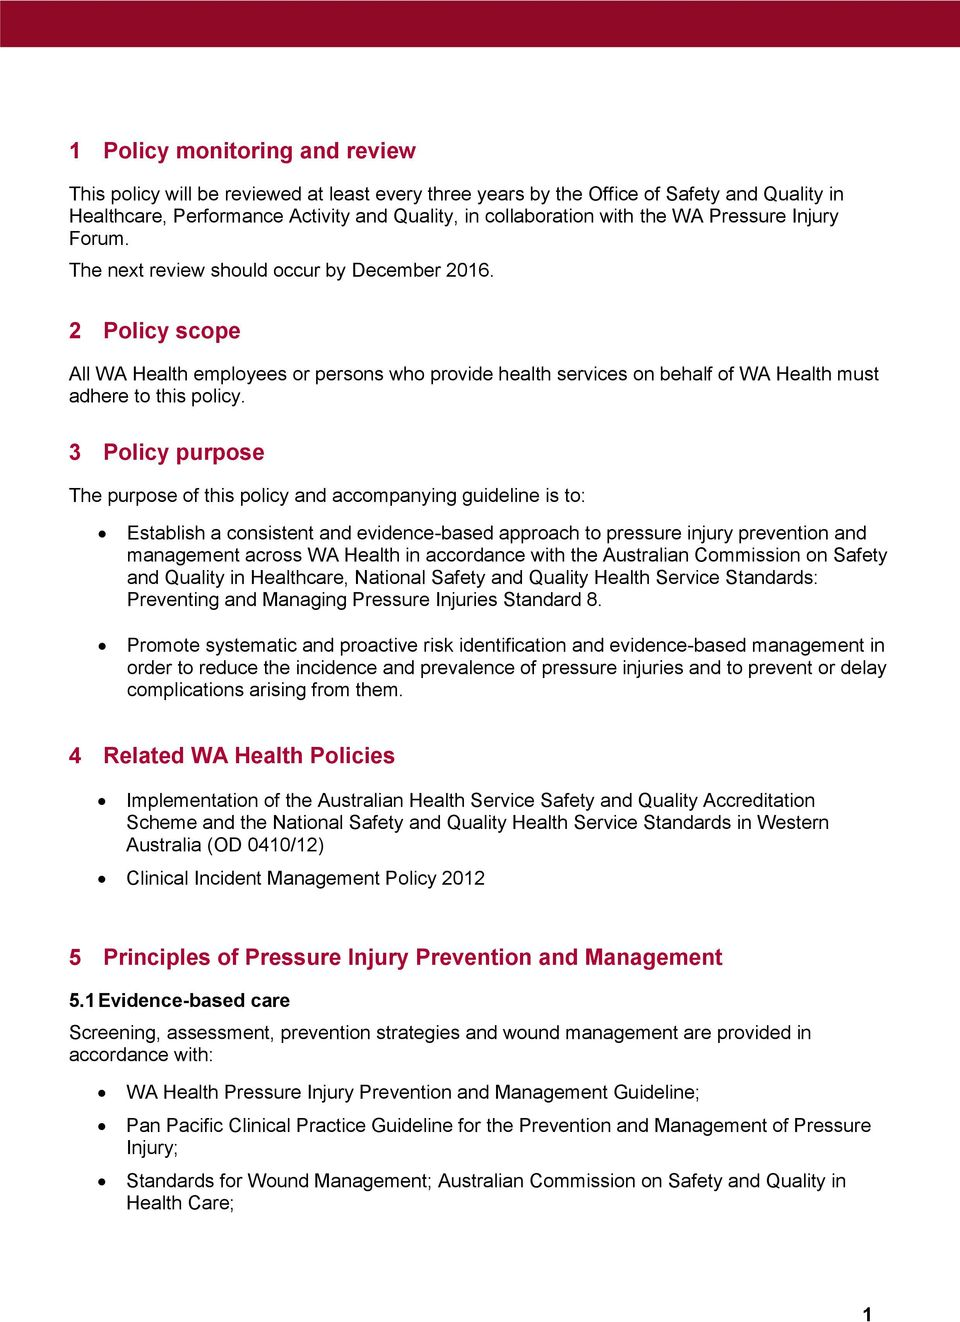 2 Policy scope All WA Health employees or persons who provide health services on behalf of WA Health must adhere to this policy.